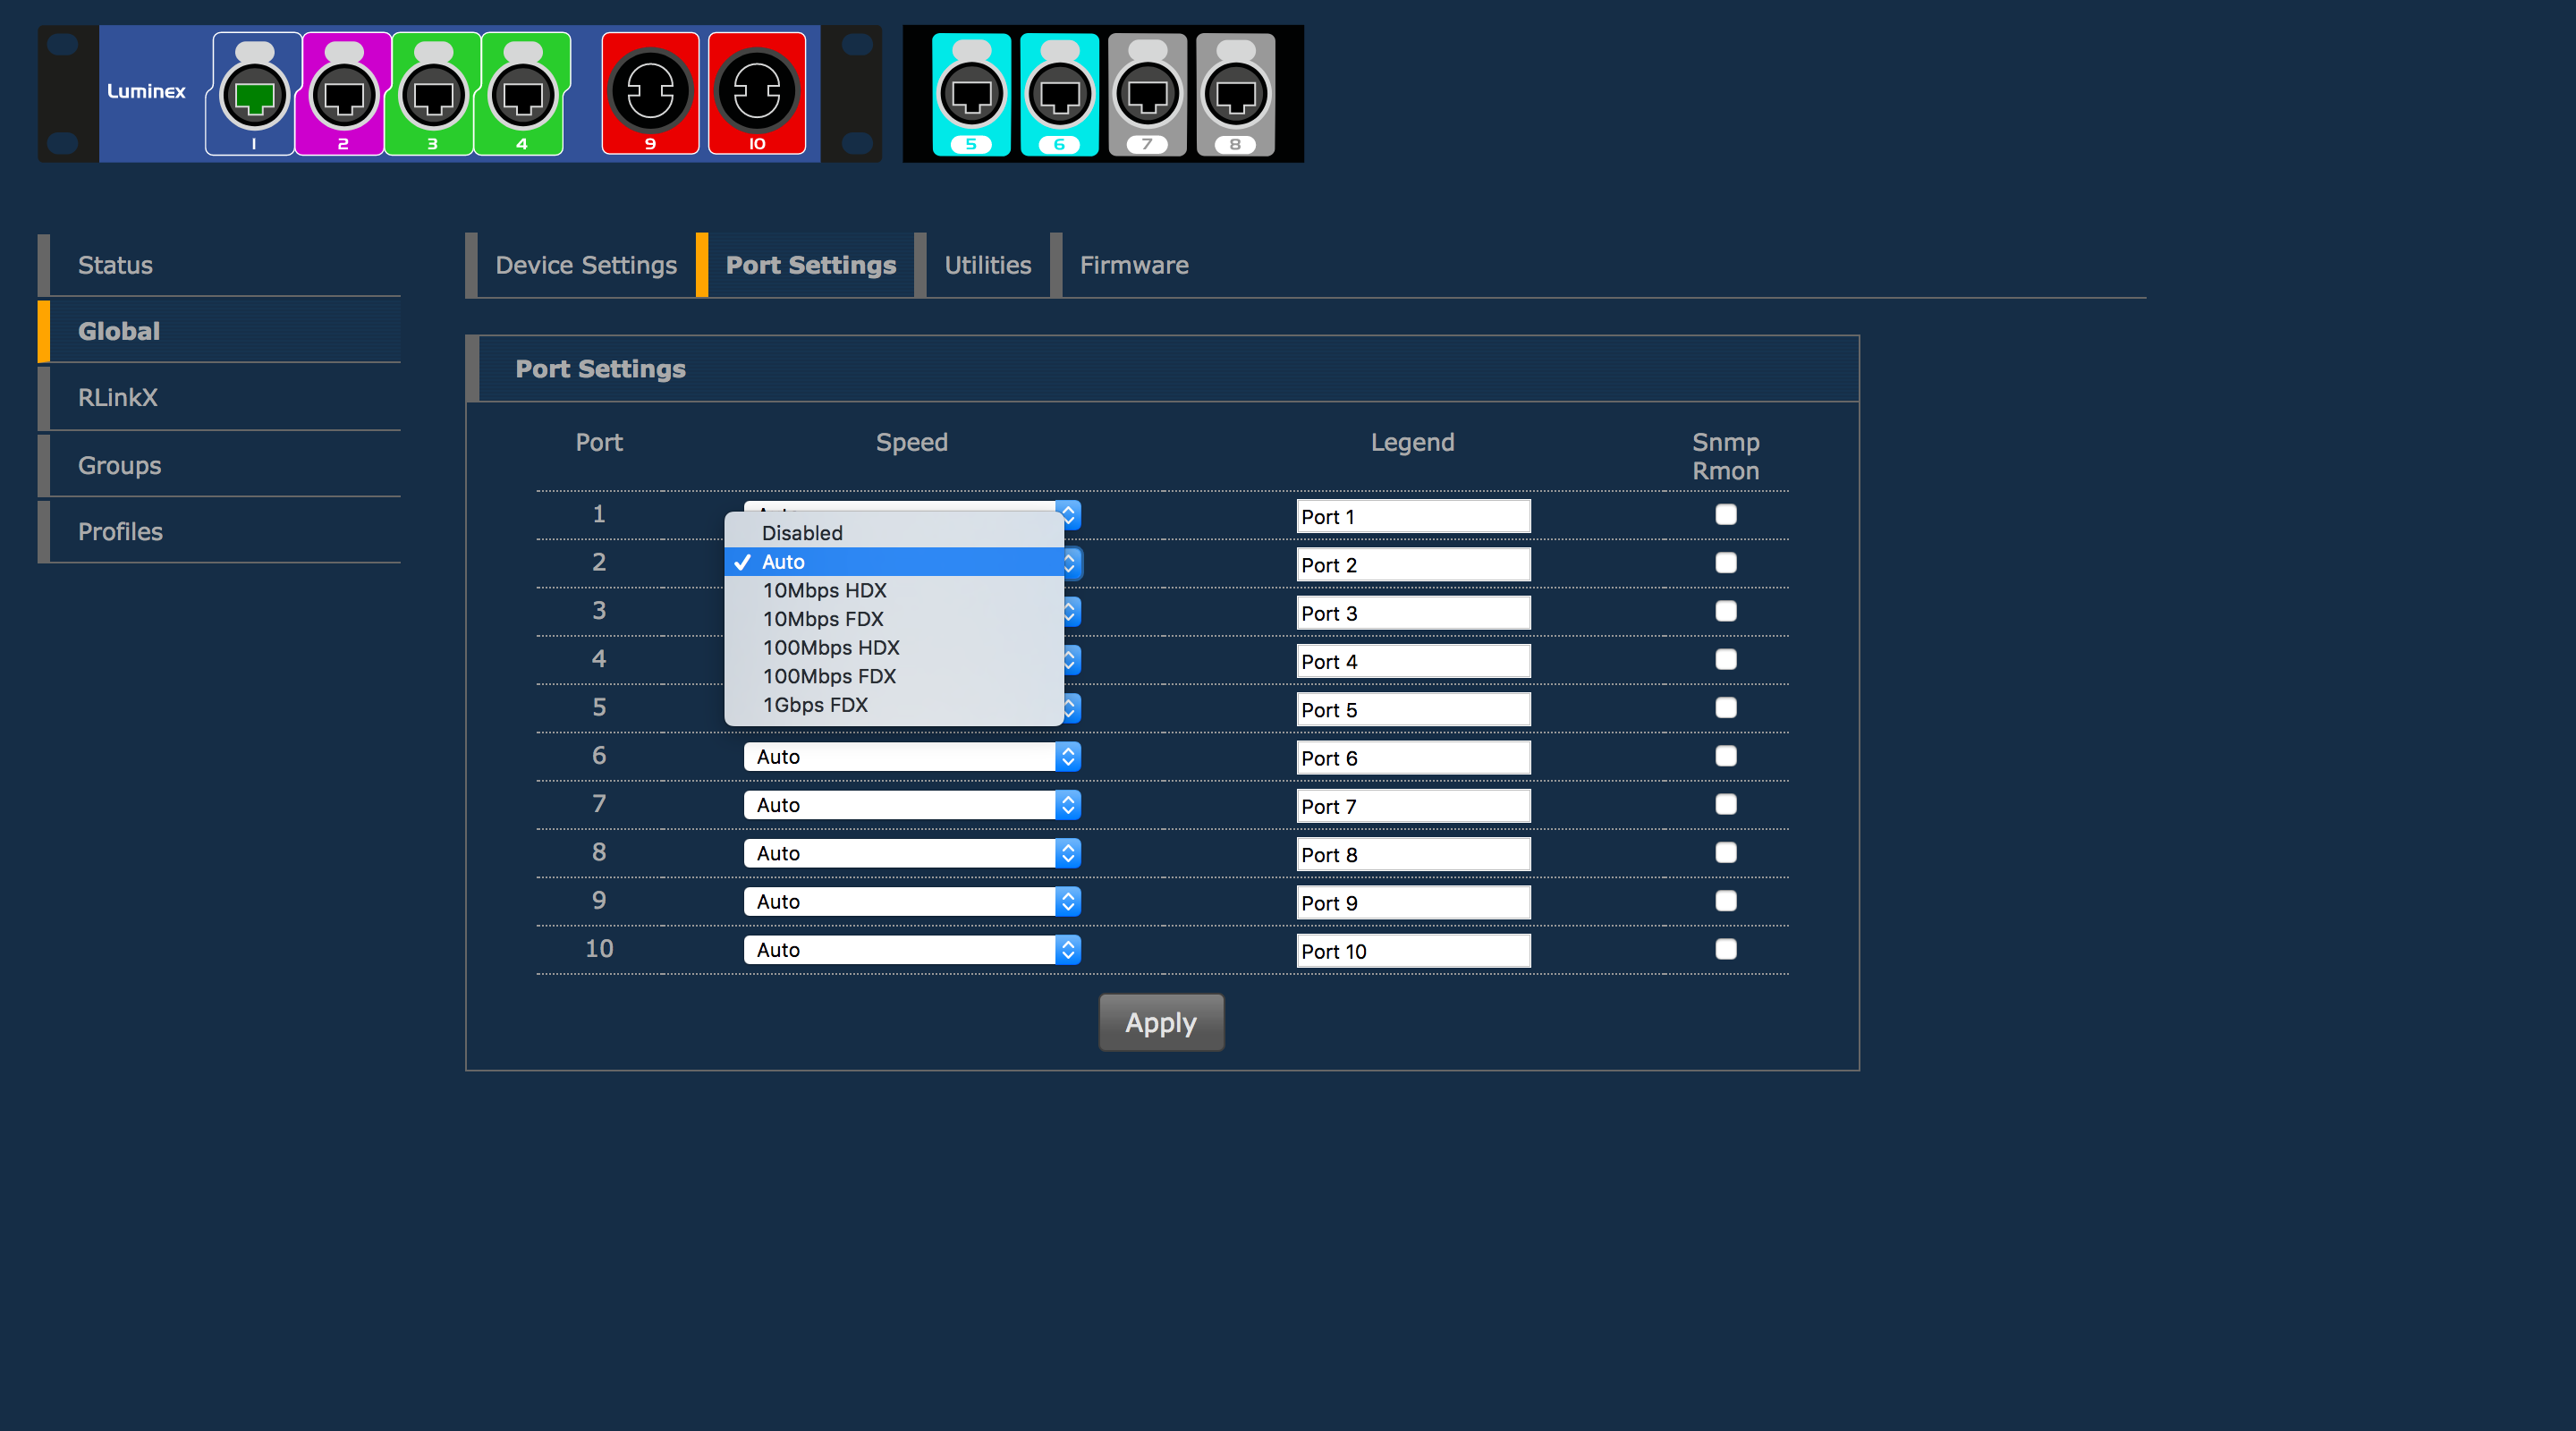 GigaCore 10 web interface - port settings